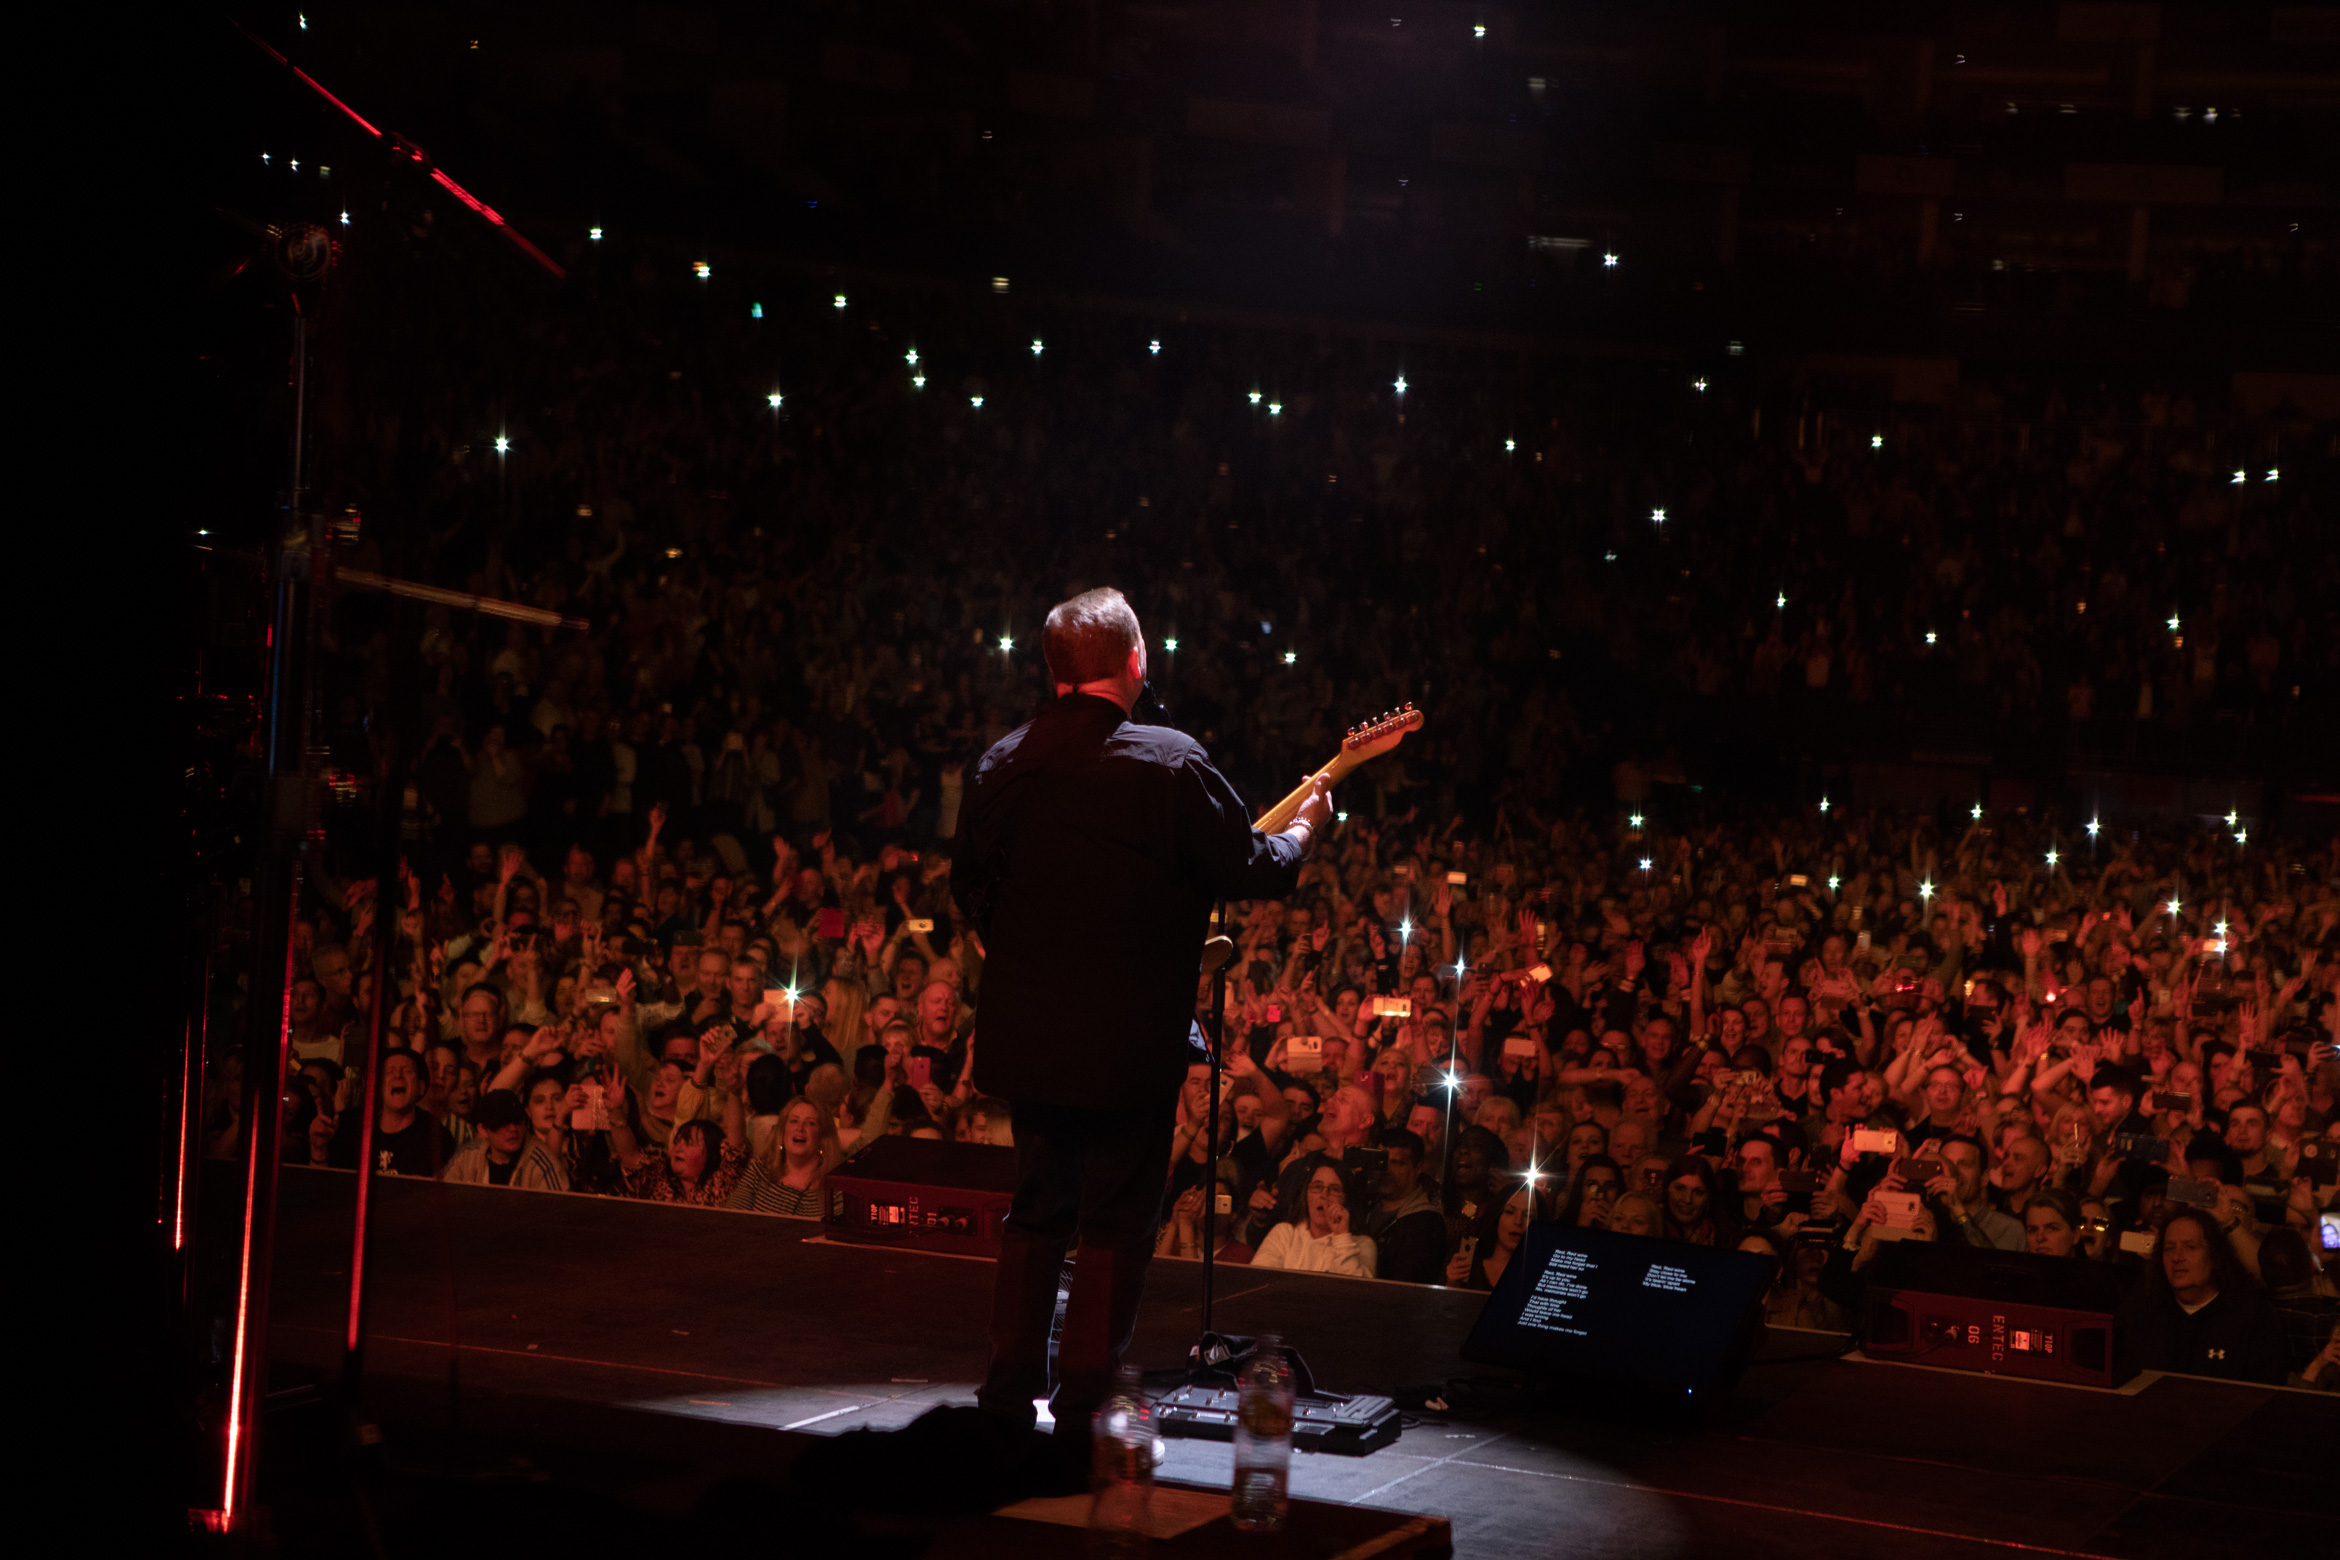 ub40_O2_arena_london_2019_james_watkins_46